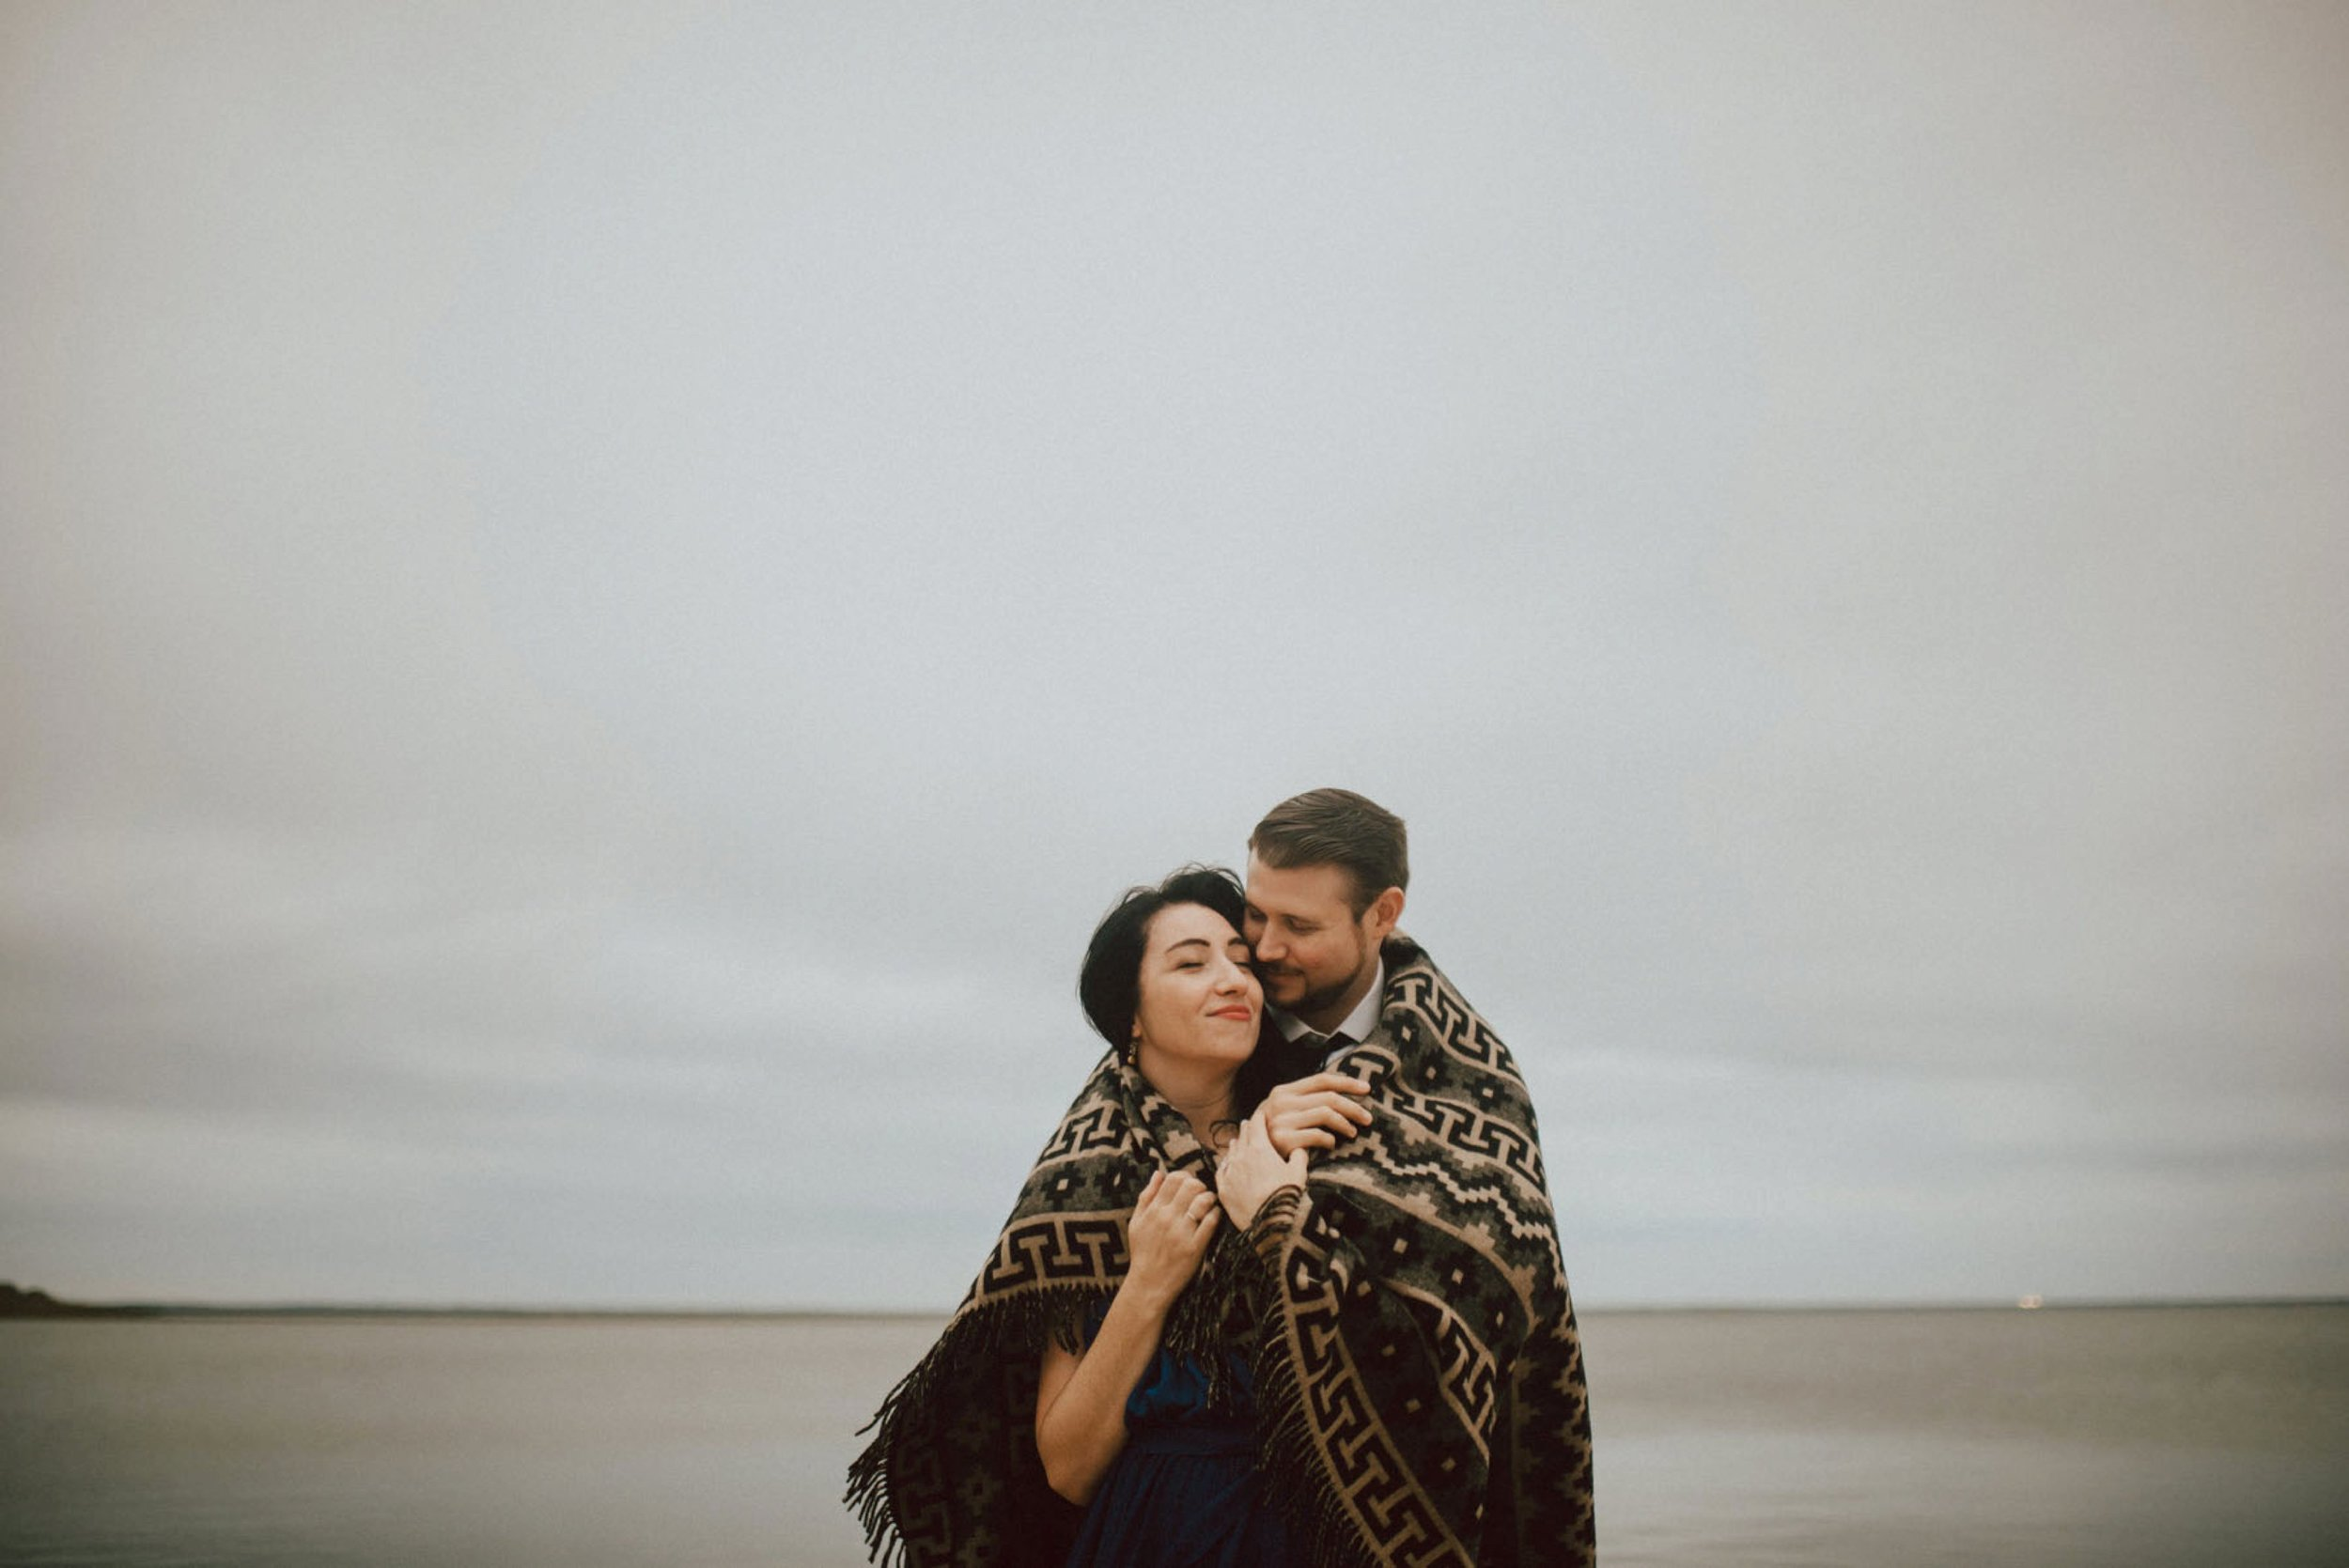 Long-beach-island-engagement-session-52.jpg